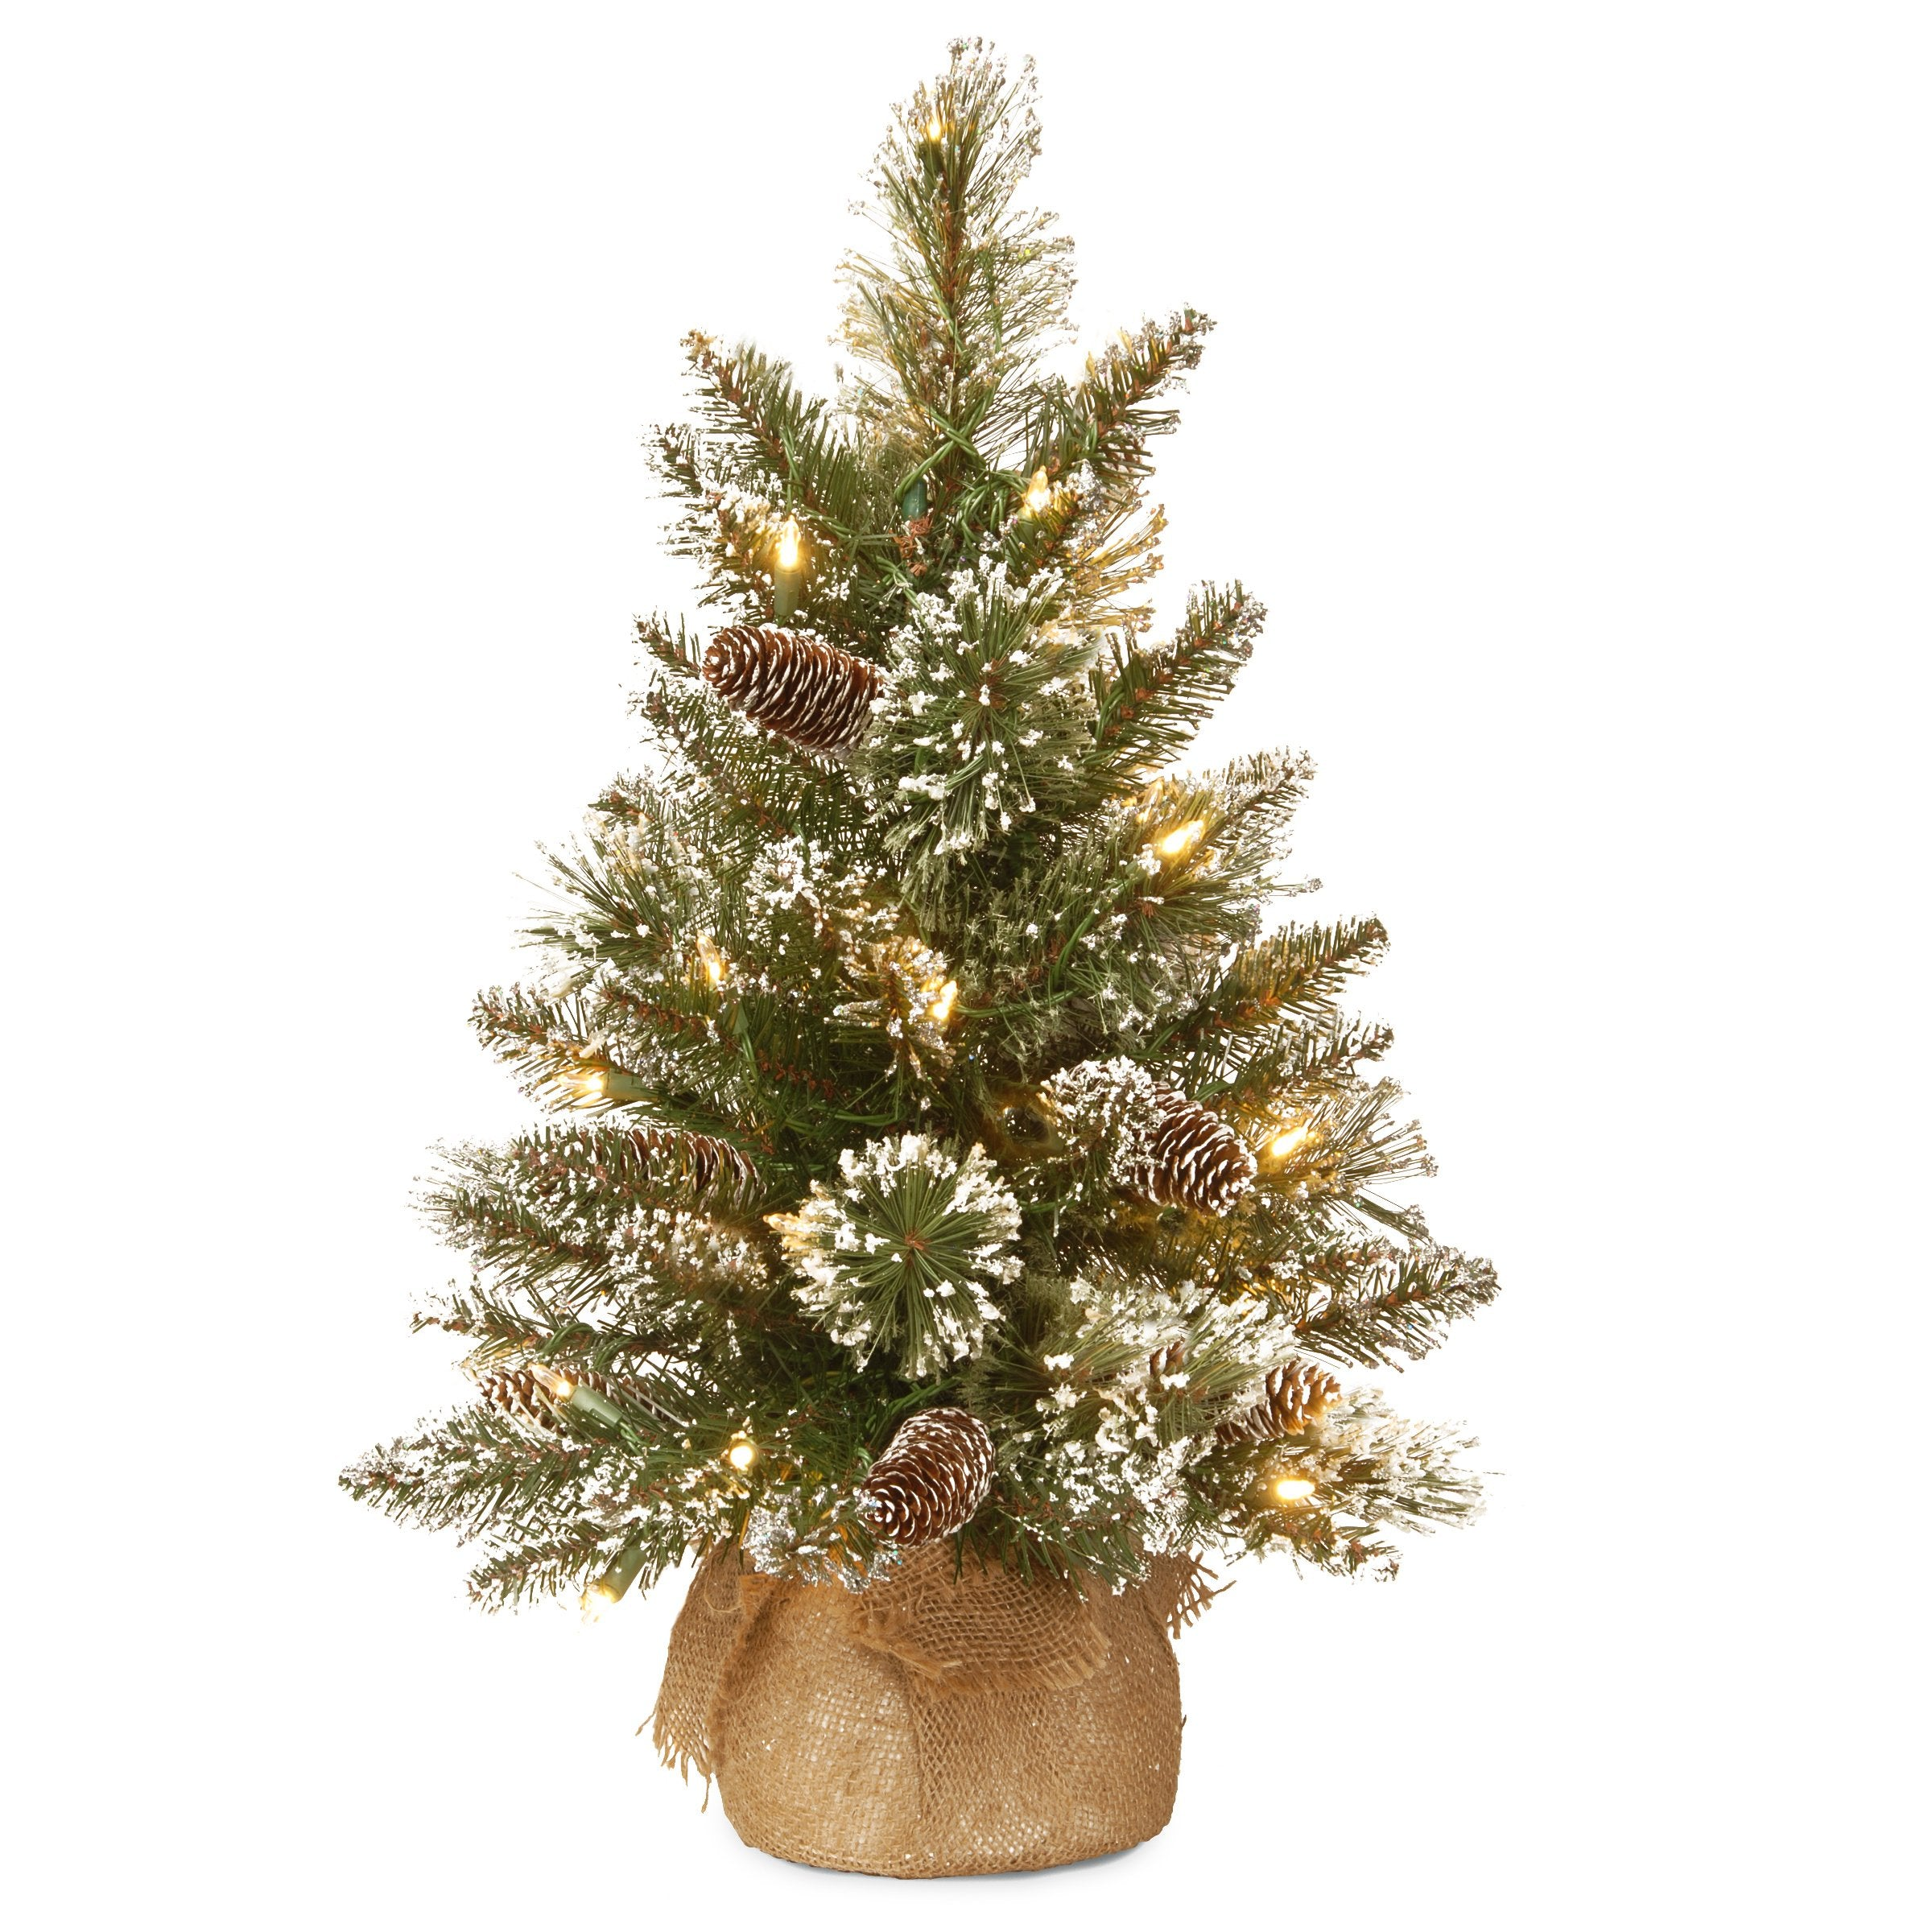 National Tree GB3-392-20-B1 2' Glittery Bristle Pine Burlap Tree with 7 White Tipped Cones & 15 Warm